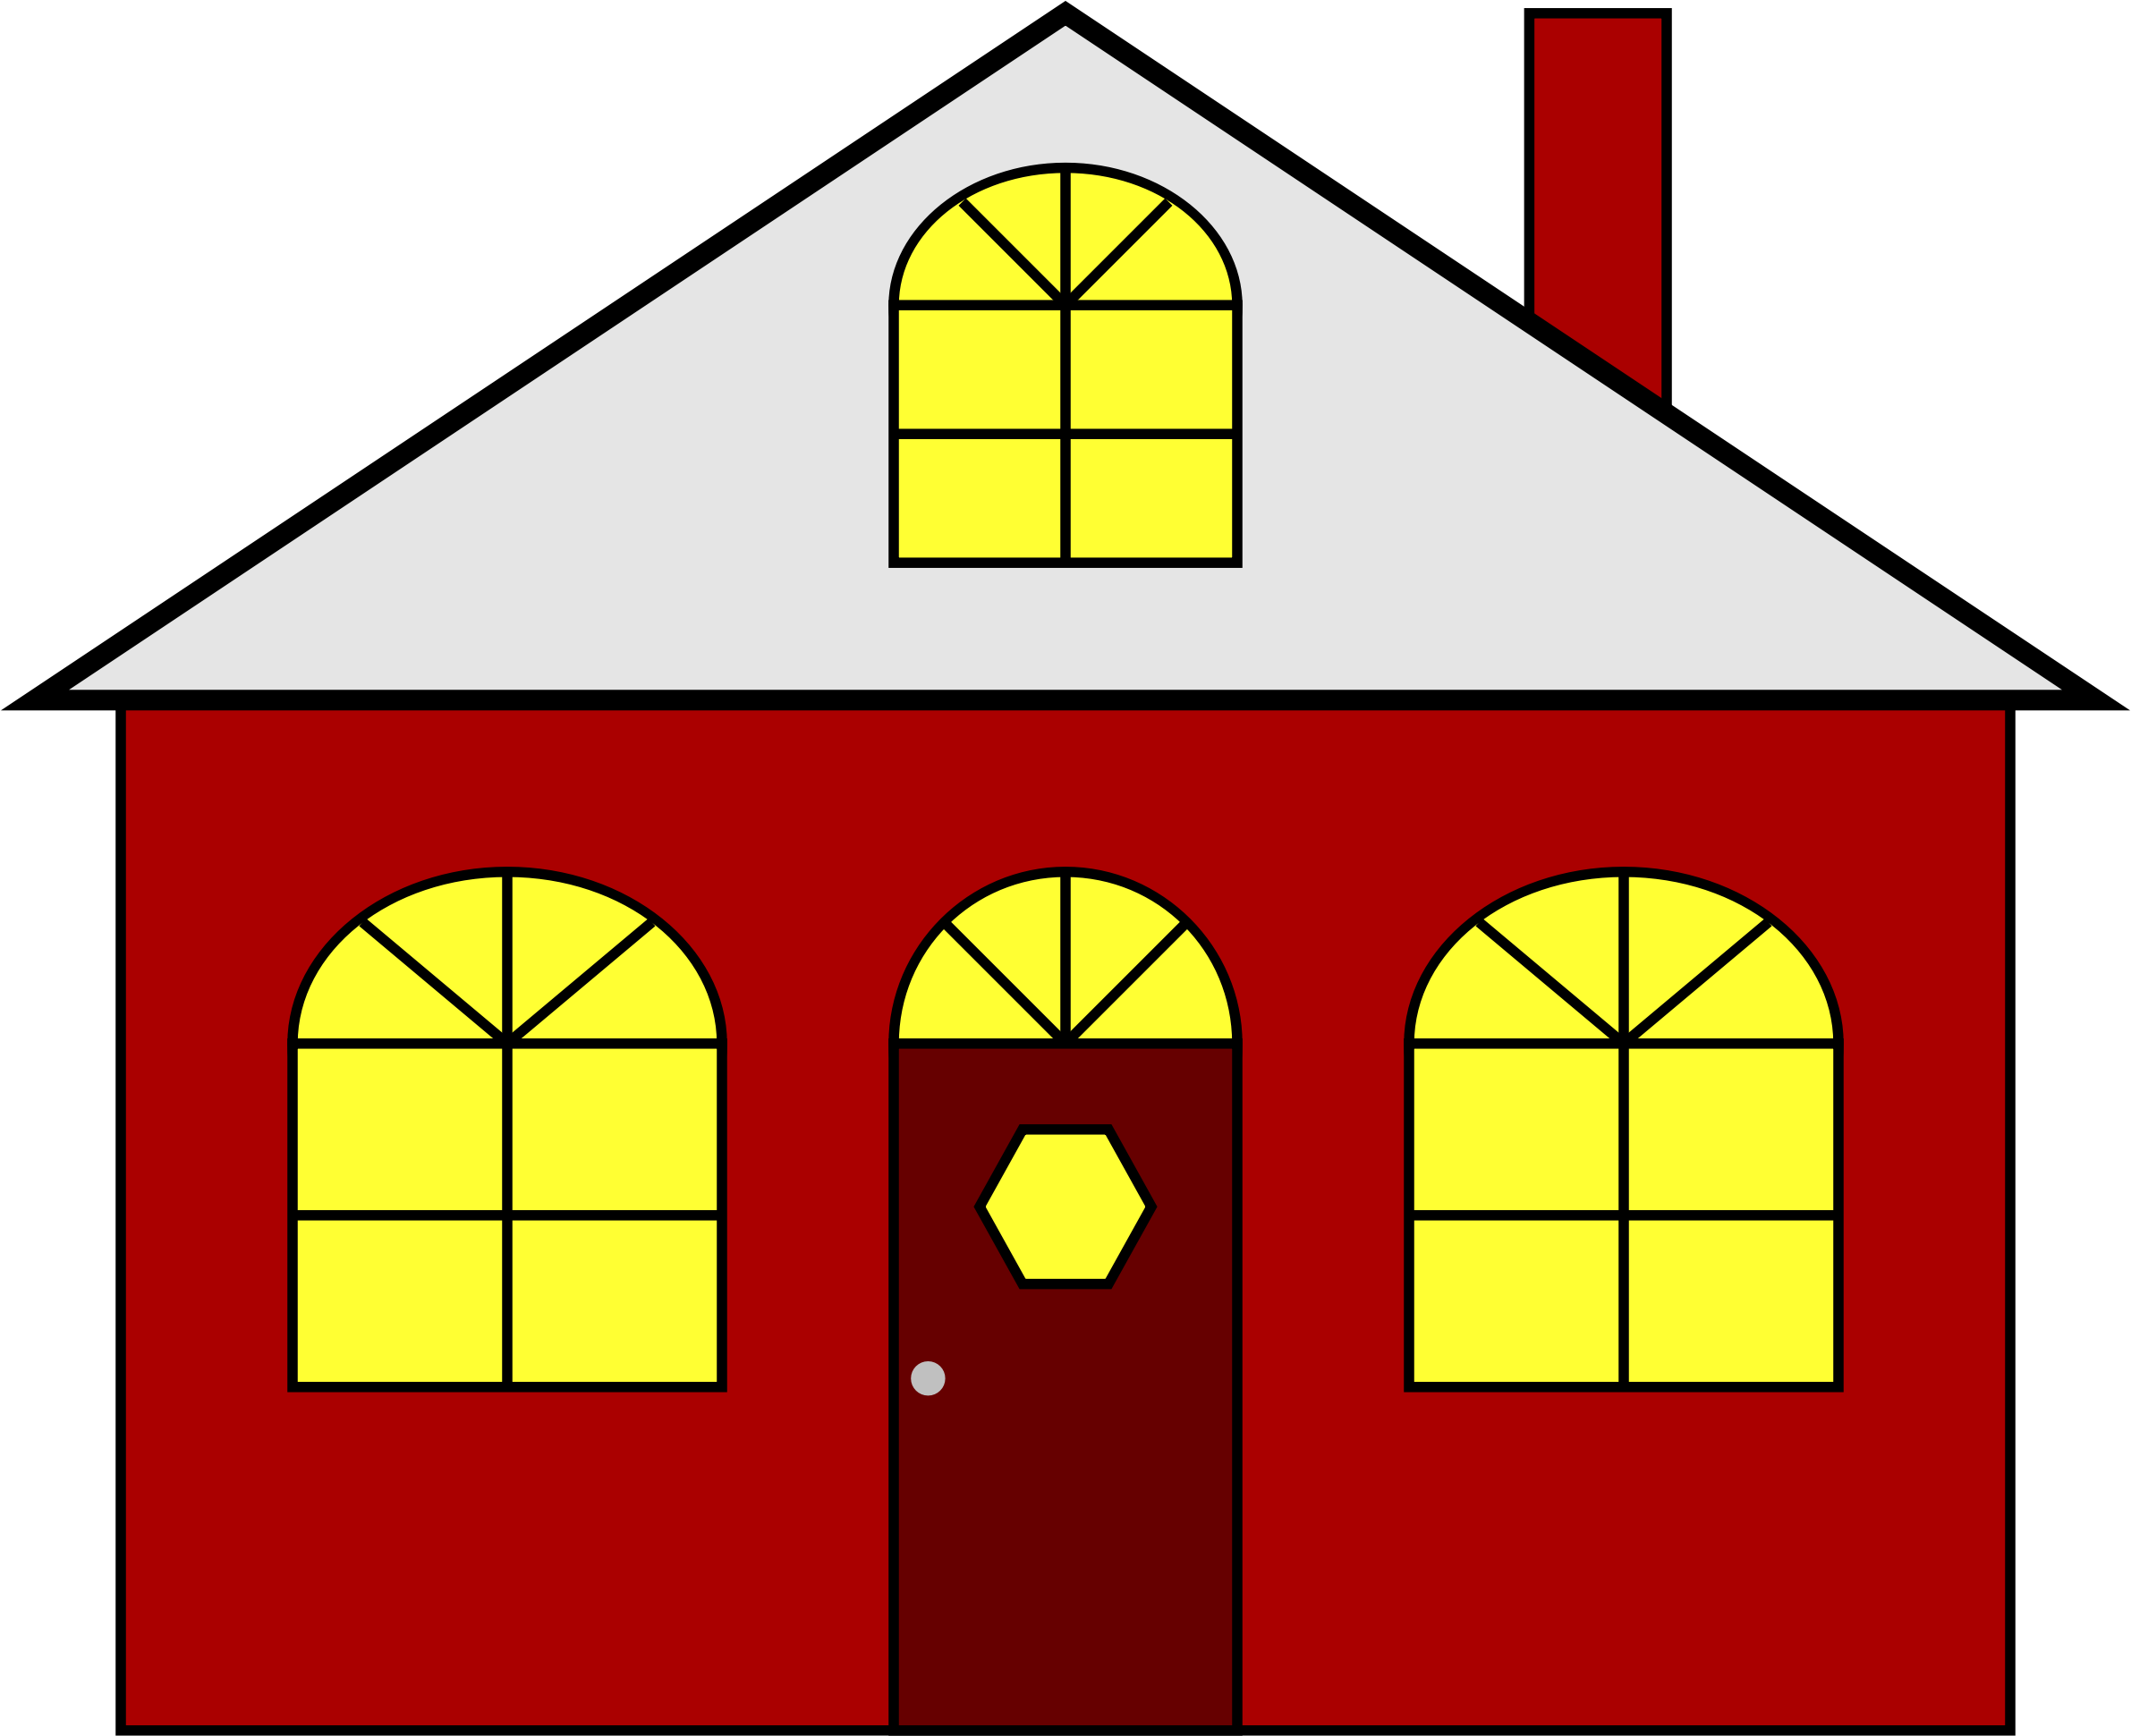 House with window clipart image download Clipart - Lighted House image download